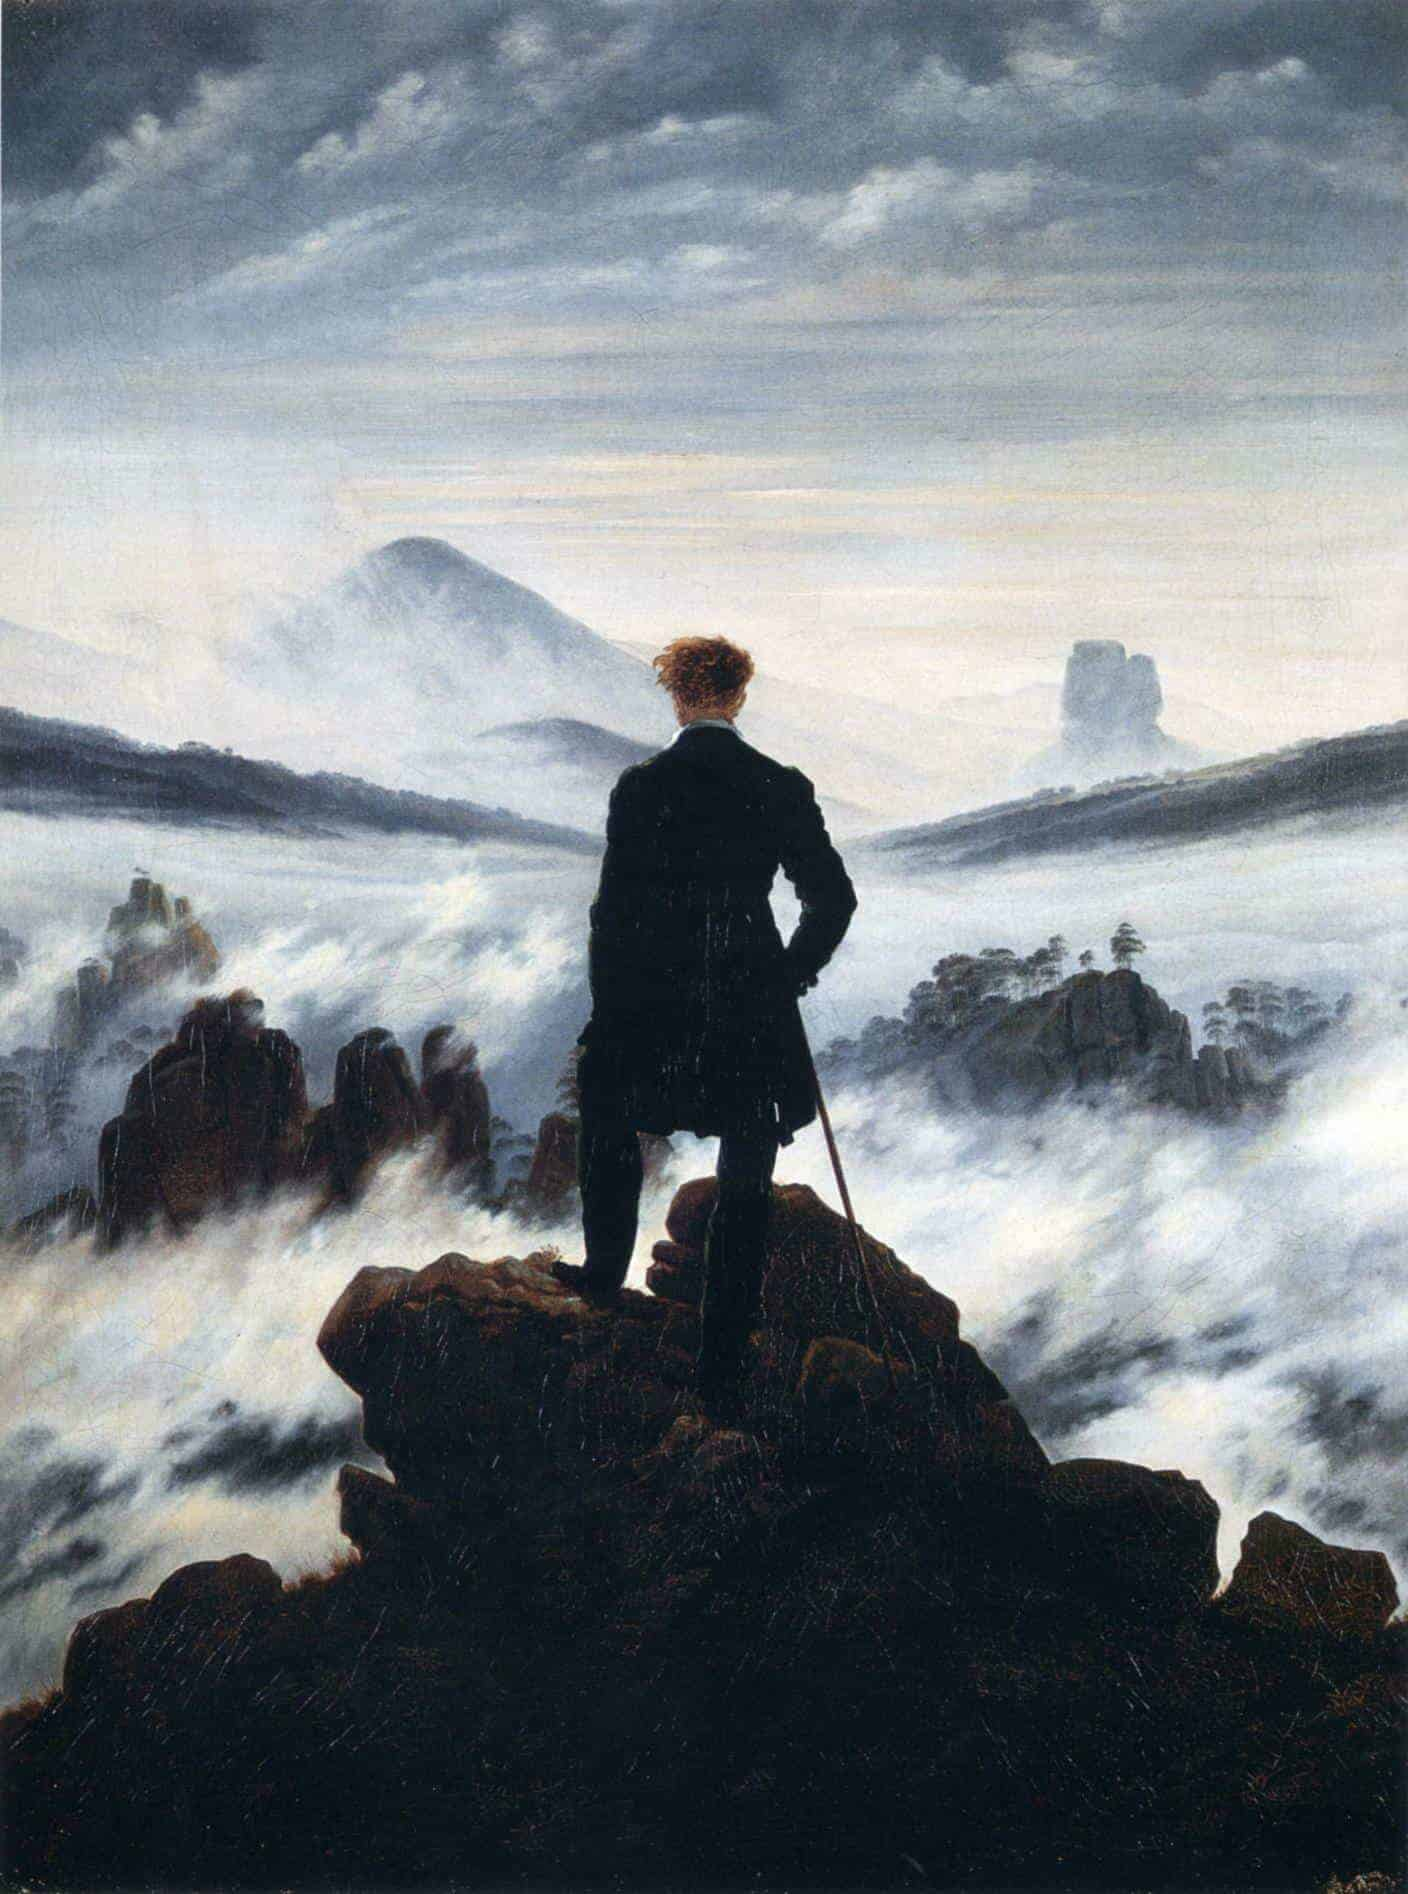 Wanderer above the Sea of Fog, an oil painting composed in 1818 by the German Romantic artist Caspar David Friedrich